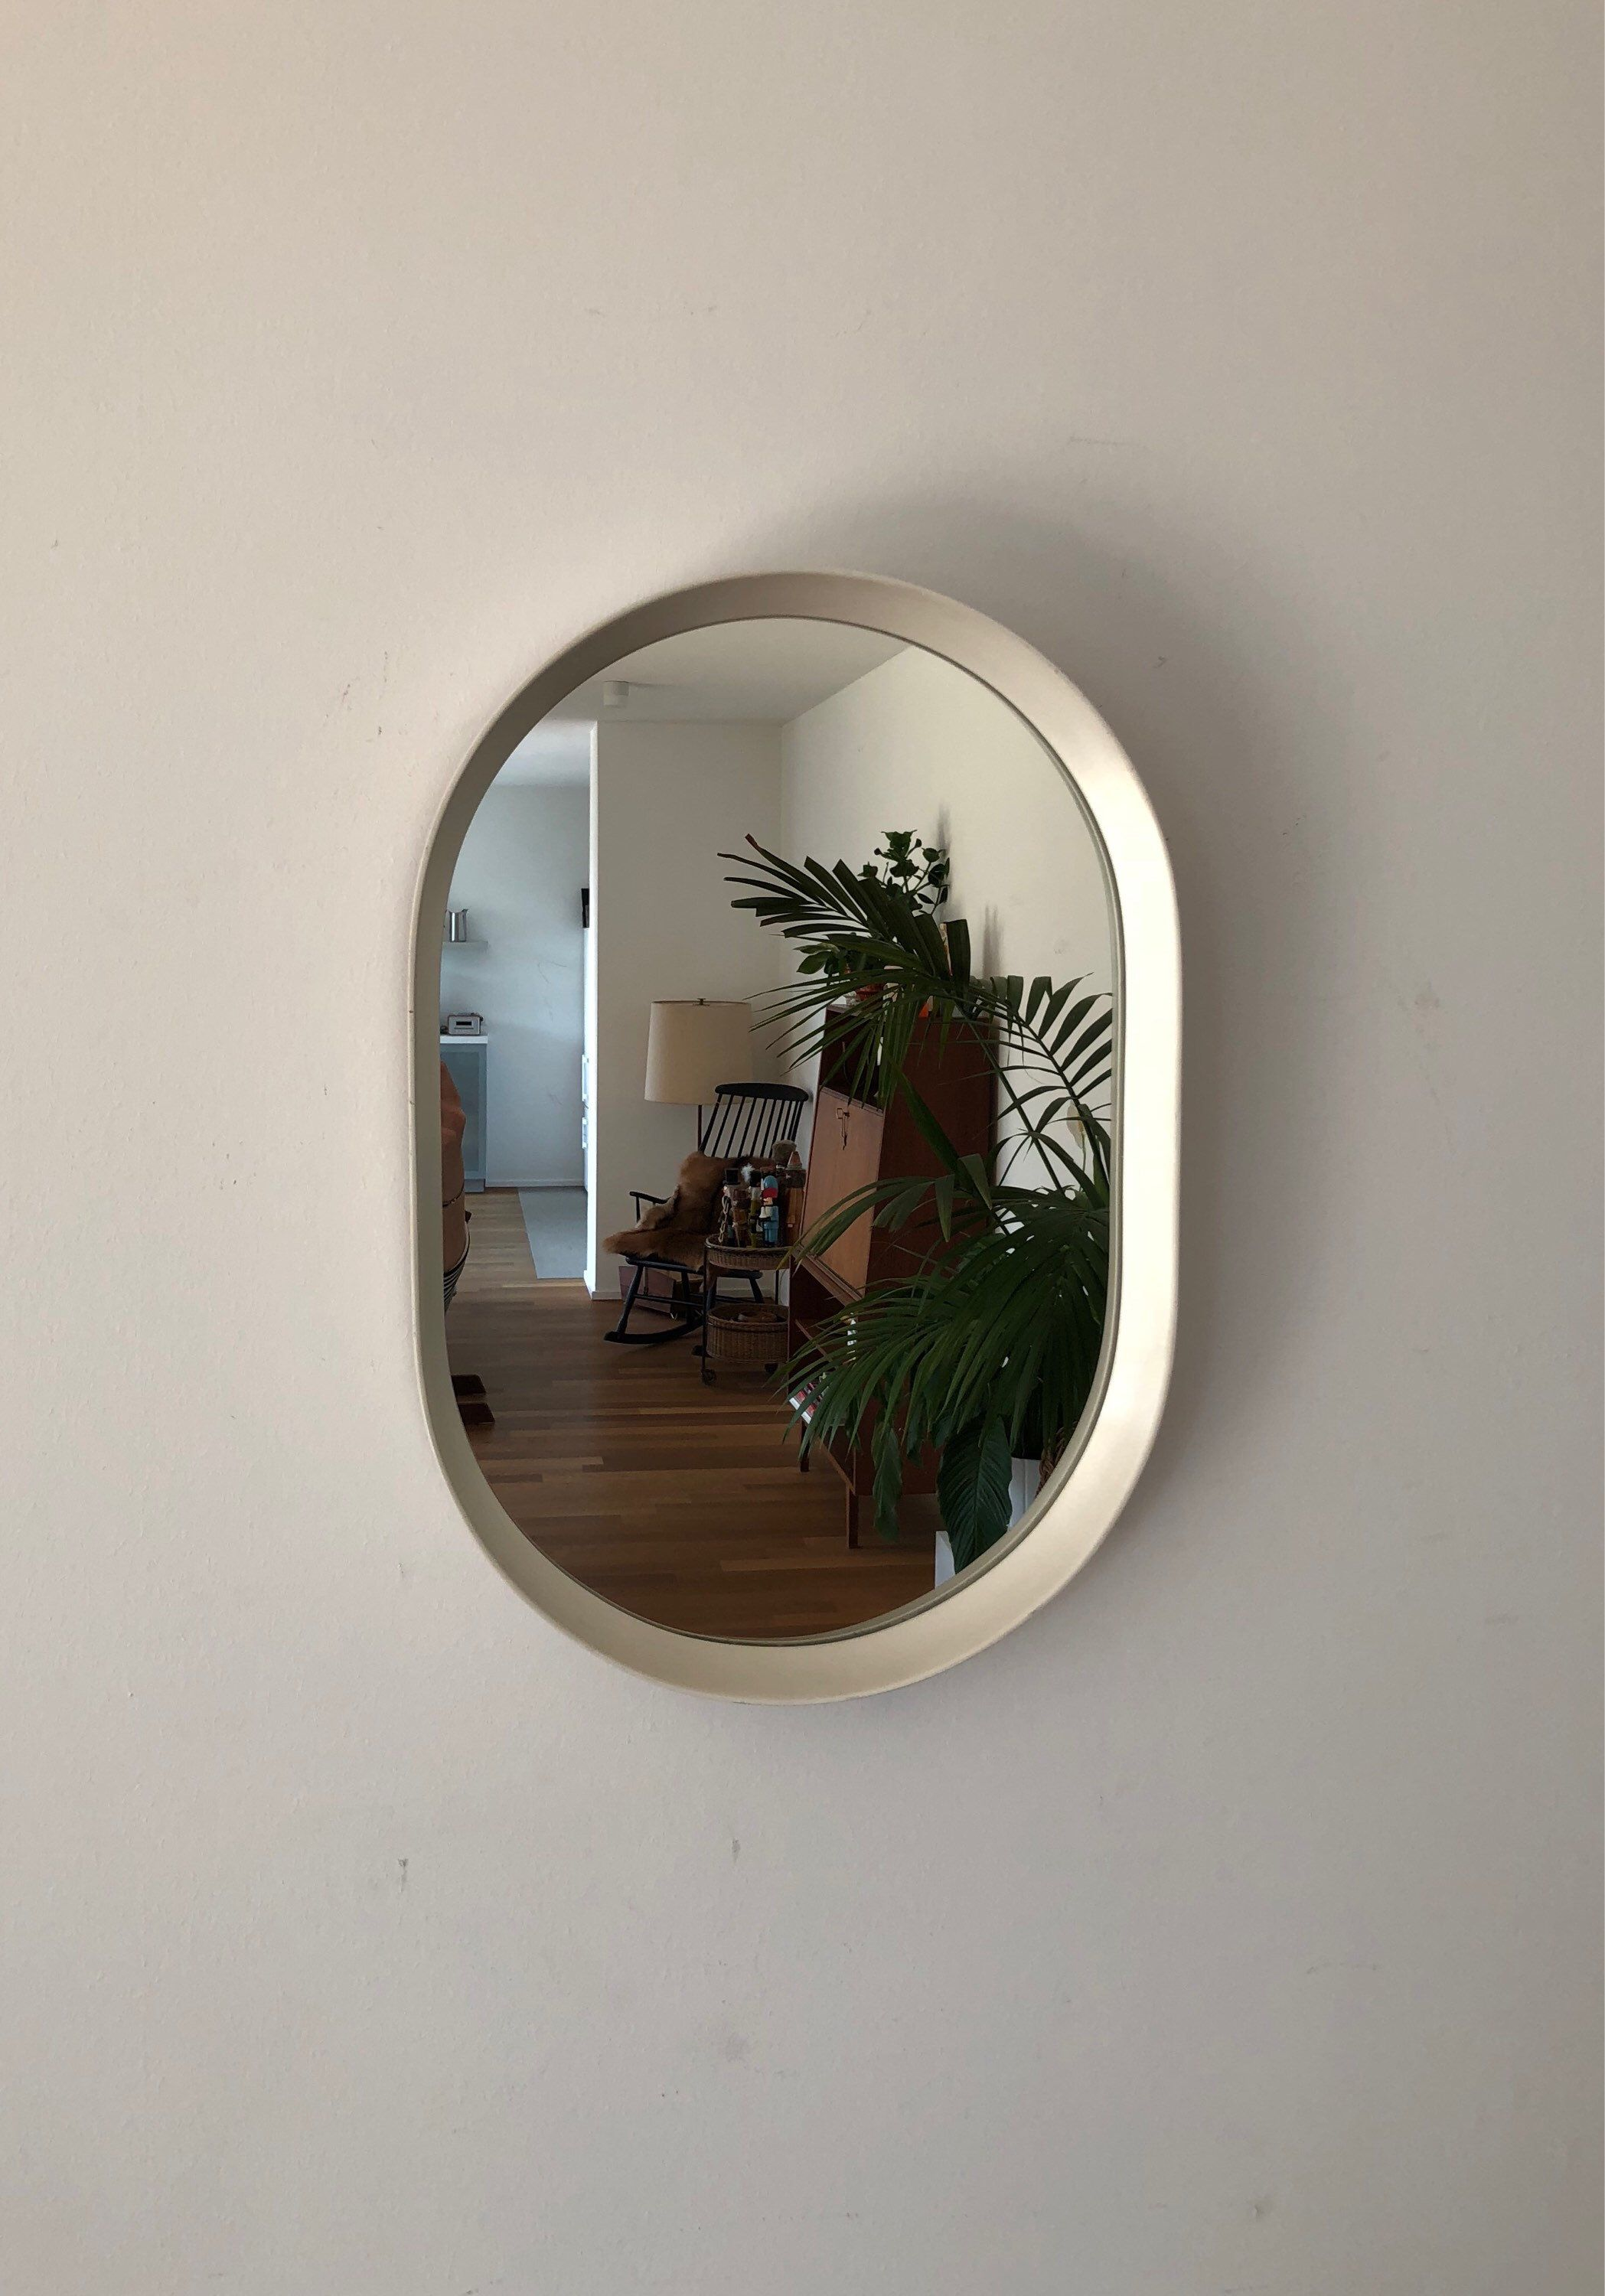 Oval 70s Mirror With A Wooden Border Moebelglueck